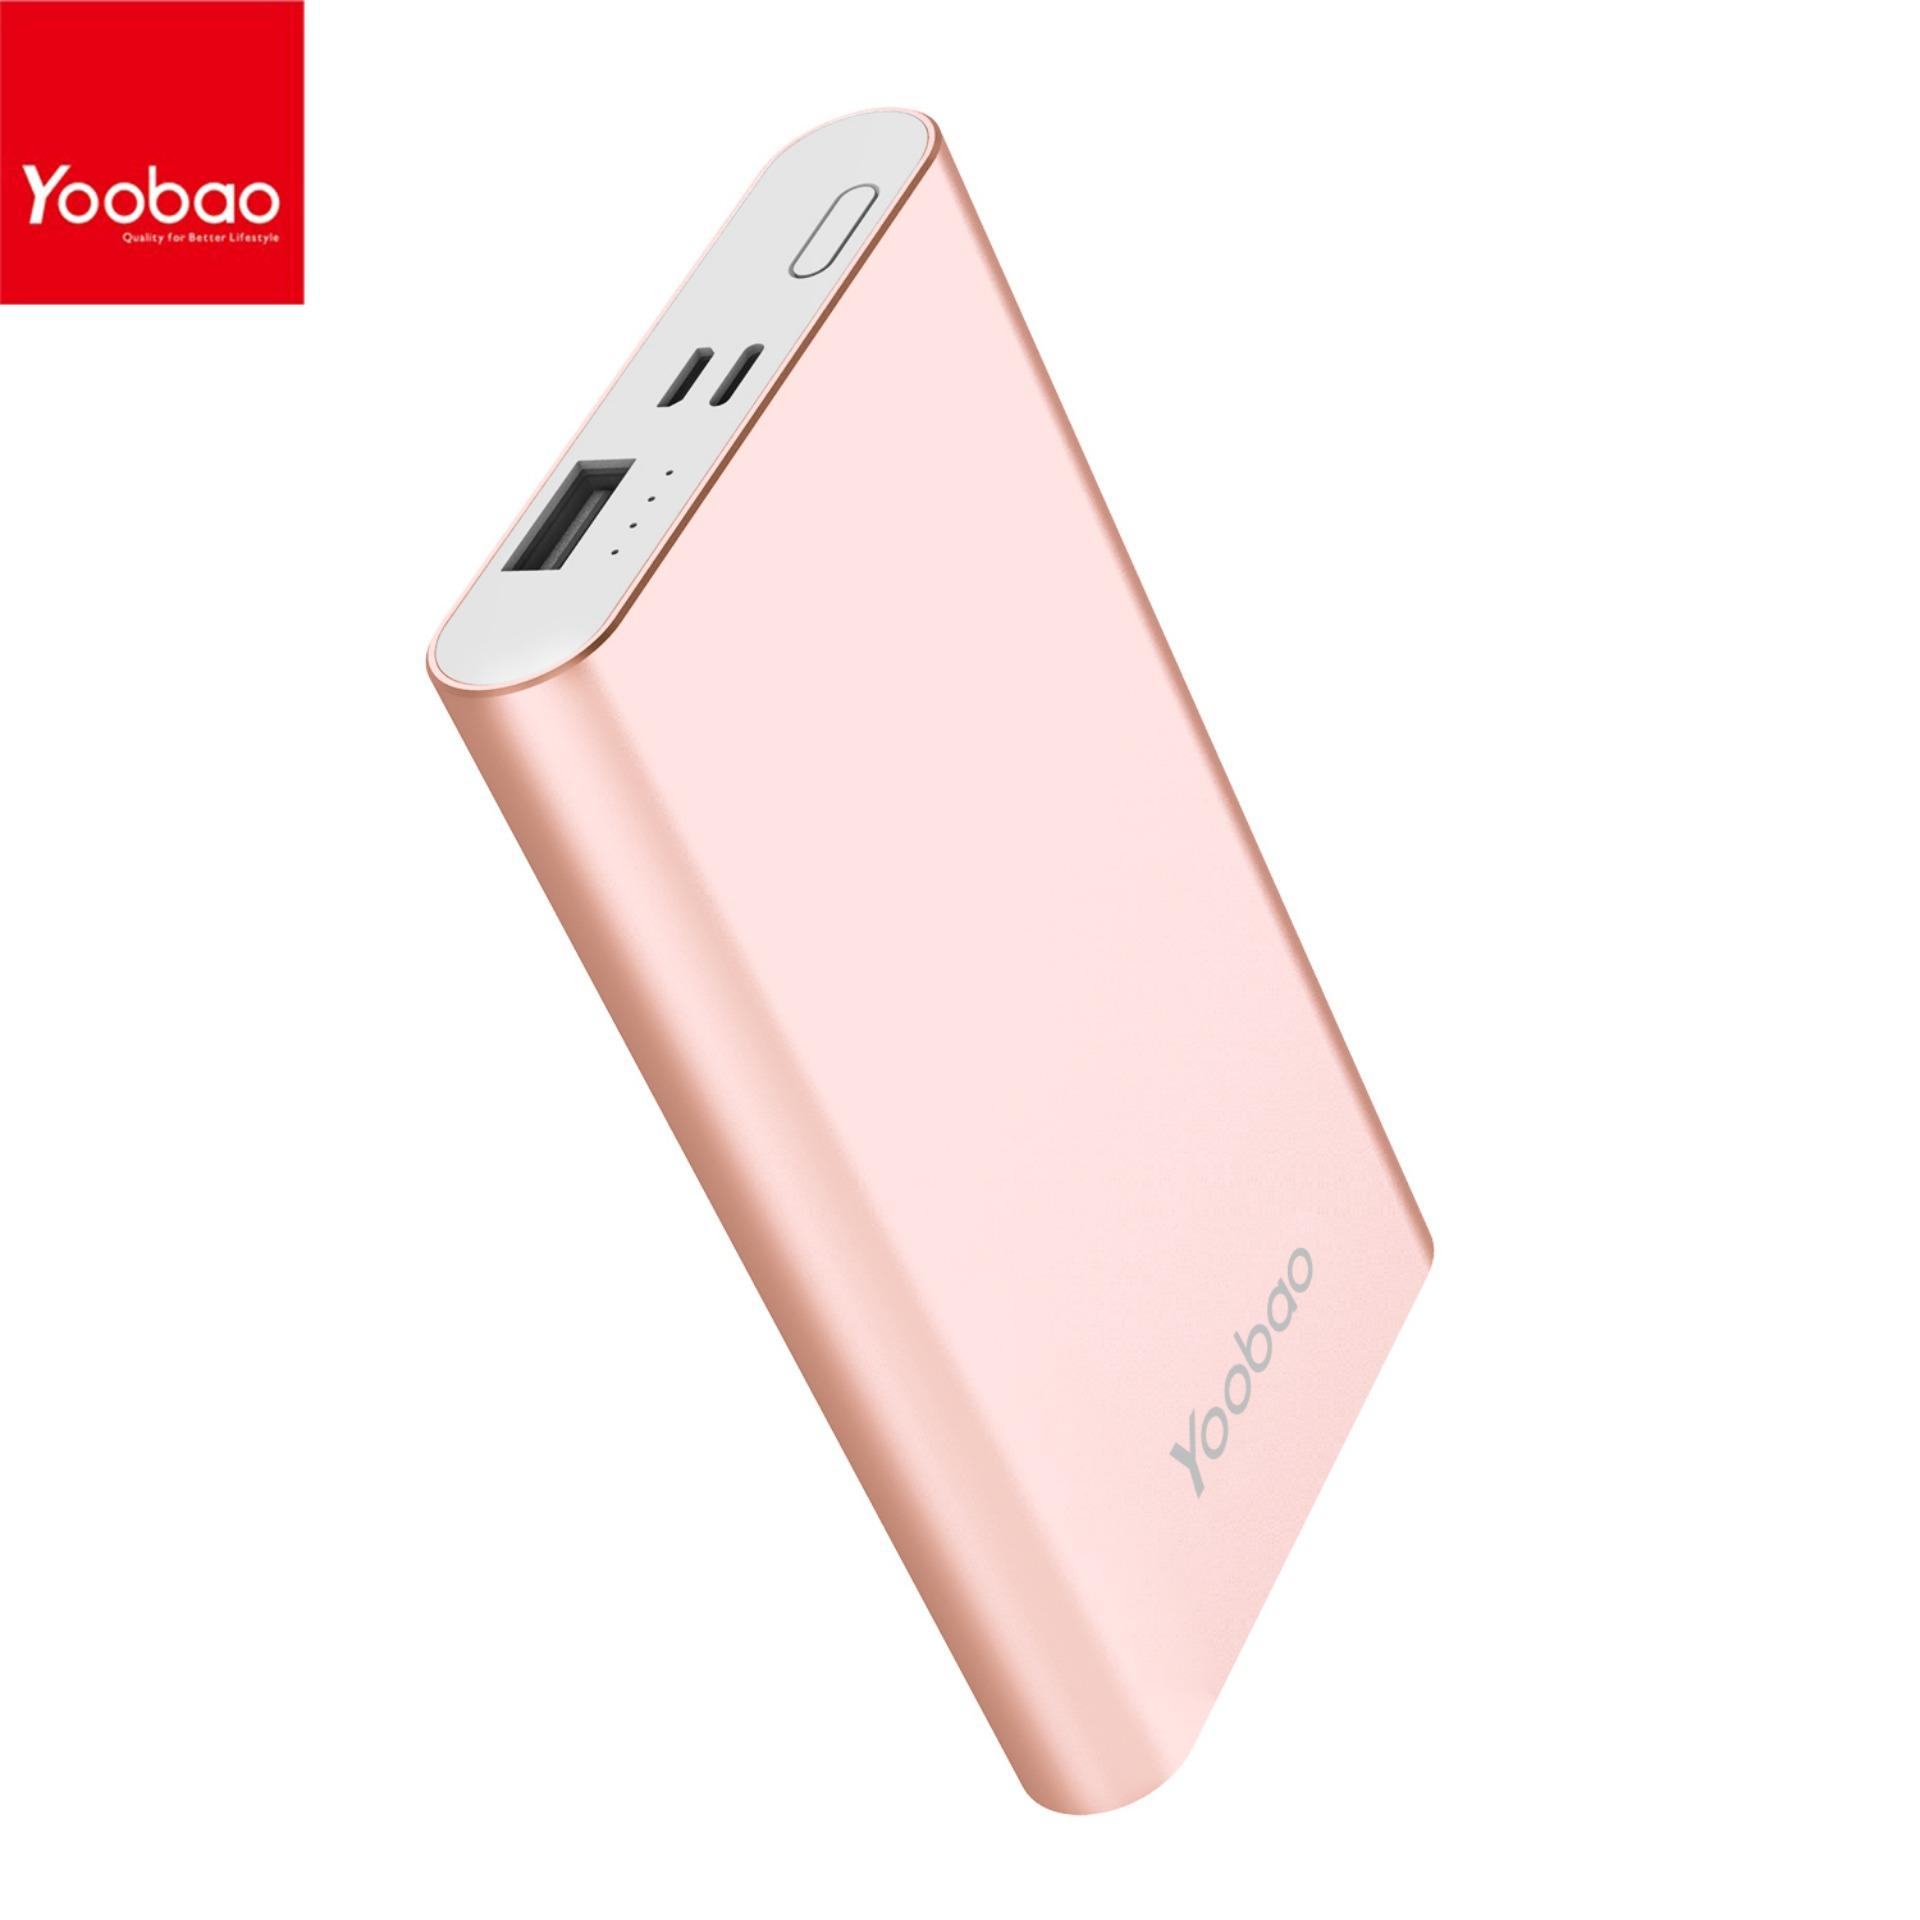 Yoobao PL10 mAh Polymer Power Bank Rose Gold